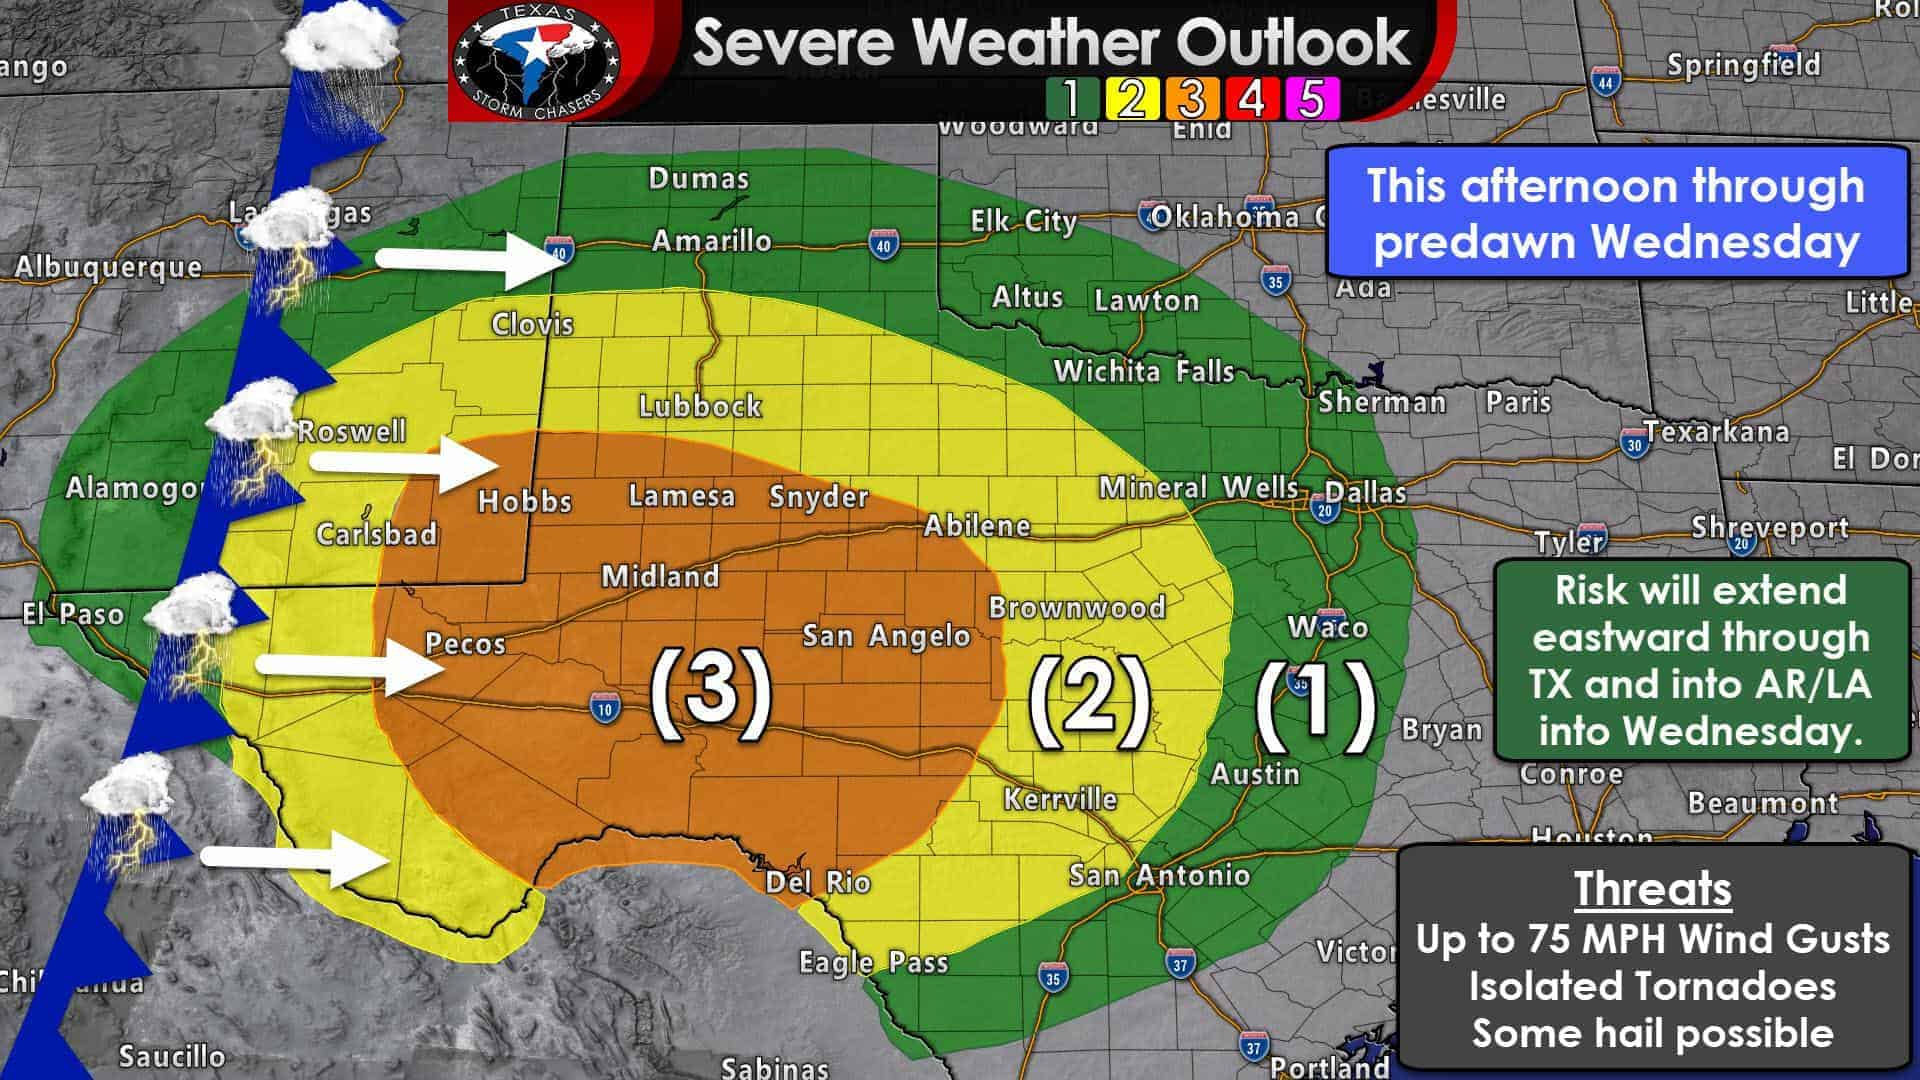 Level 3 Risk of Severe Storms with Damaging Winds and Isolated Tornadoes Overnight